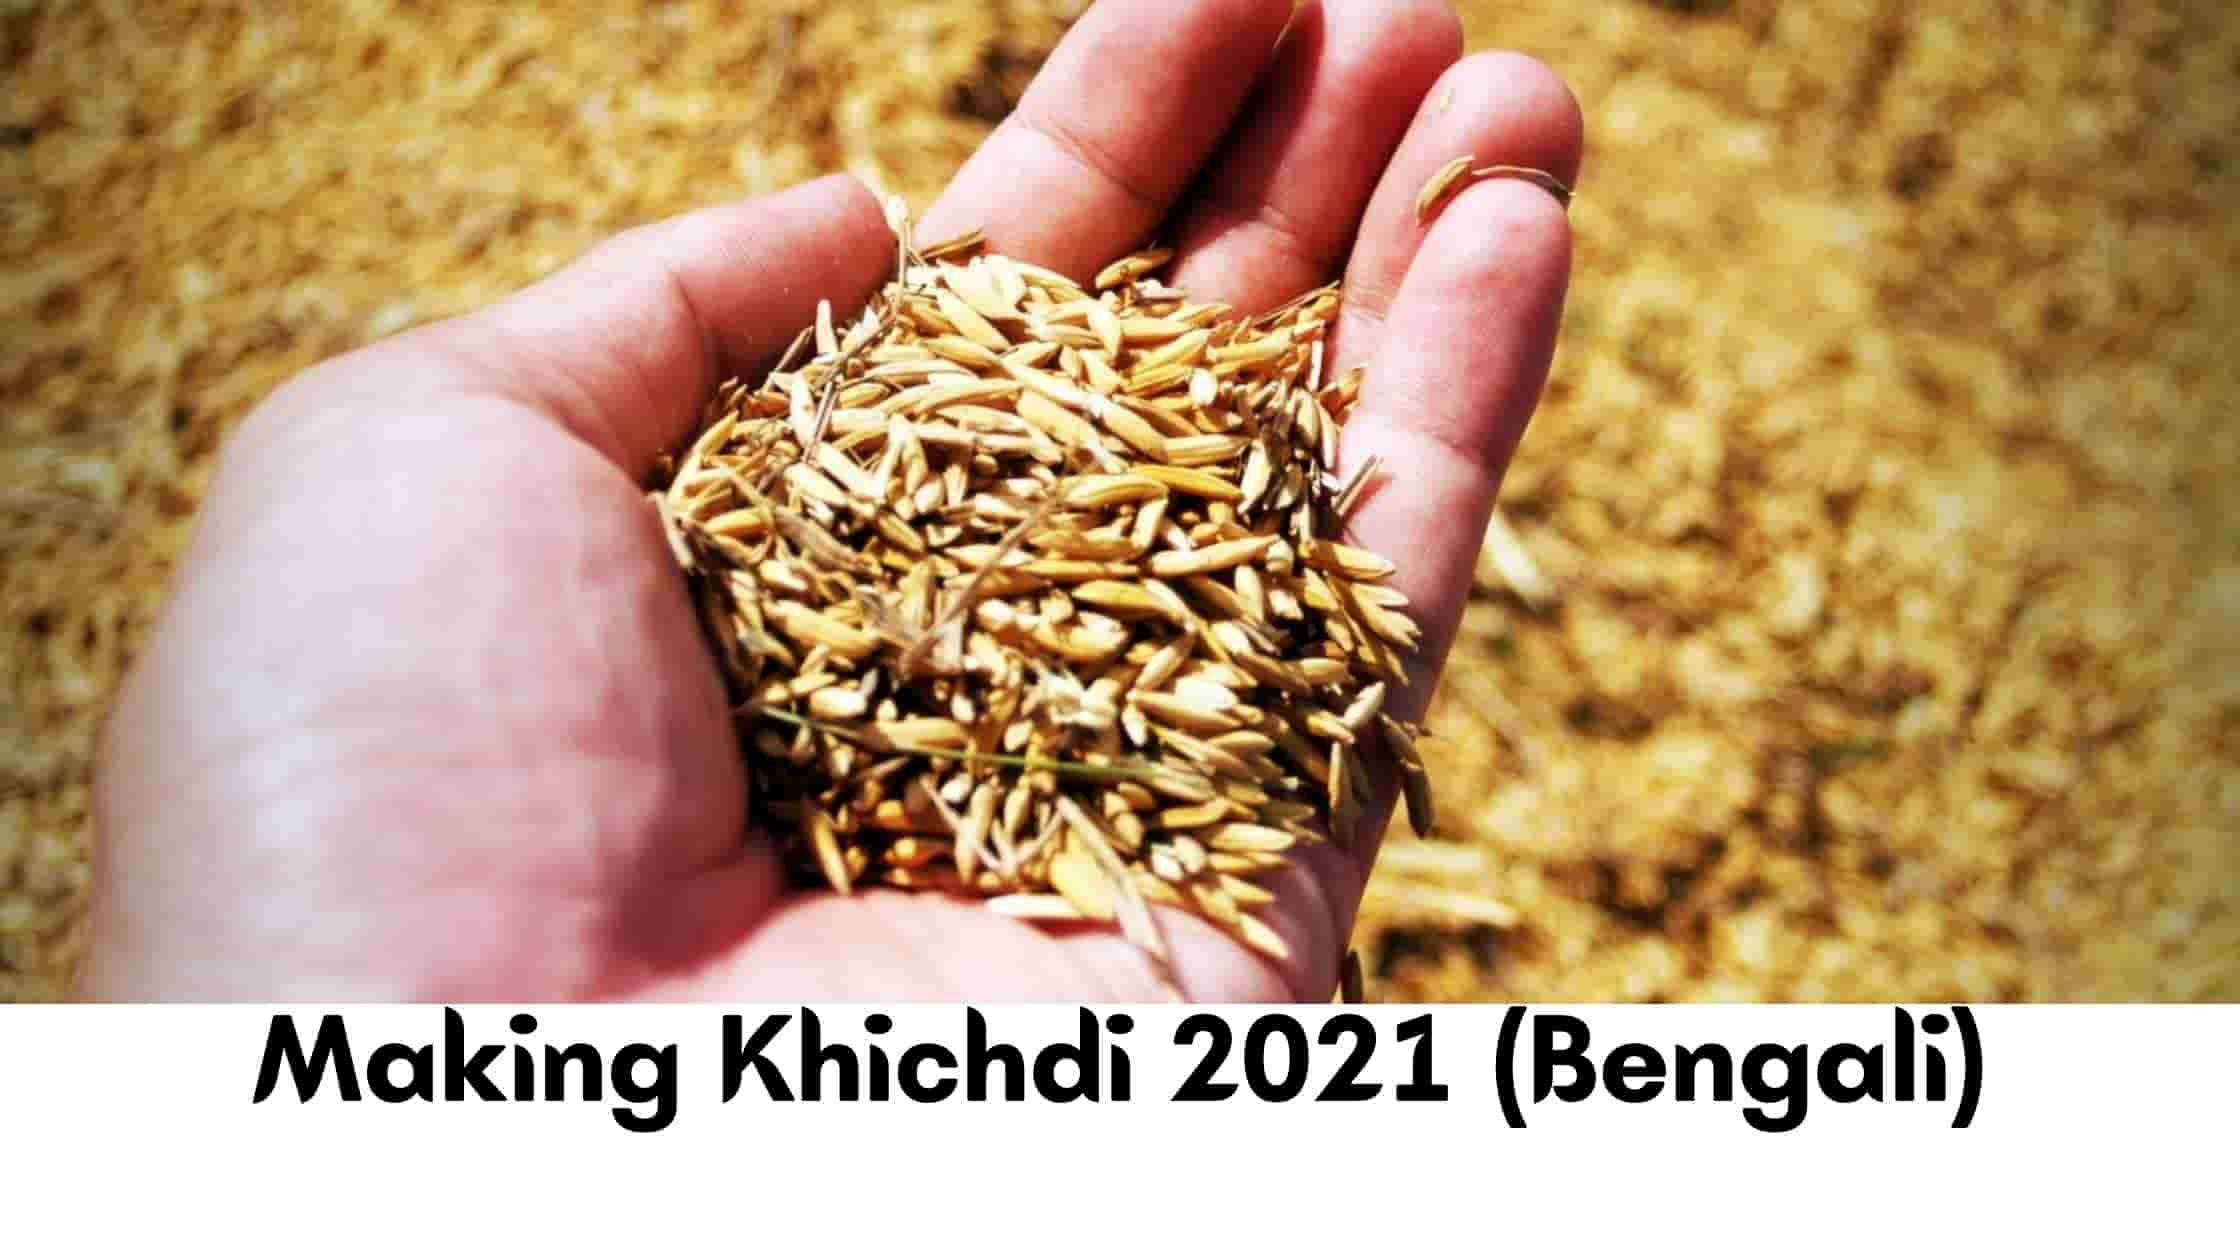 Do You Know Best 10 Rice for Making Khichdi 2021 (Bengali)